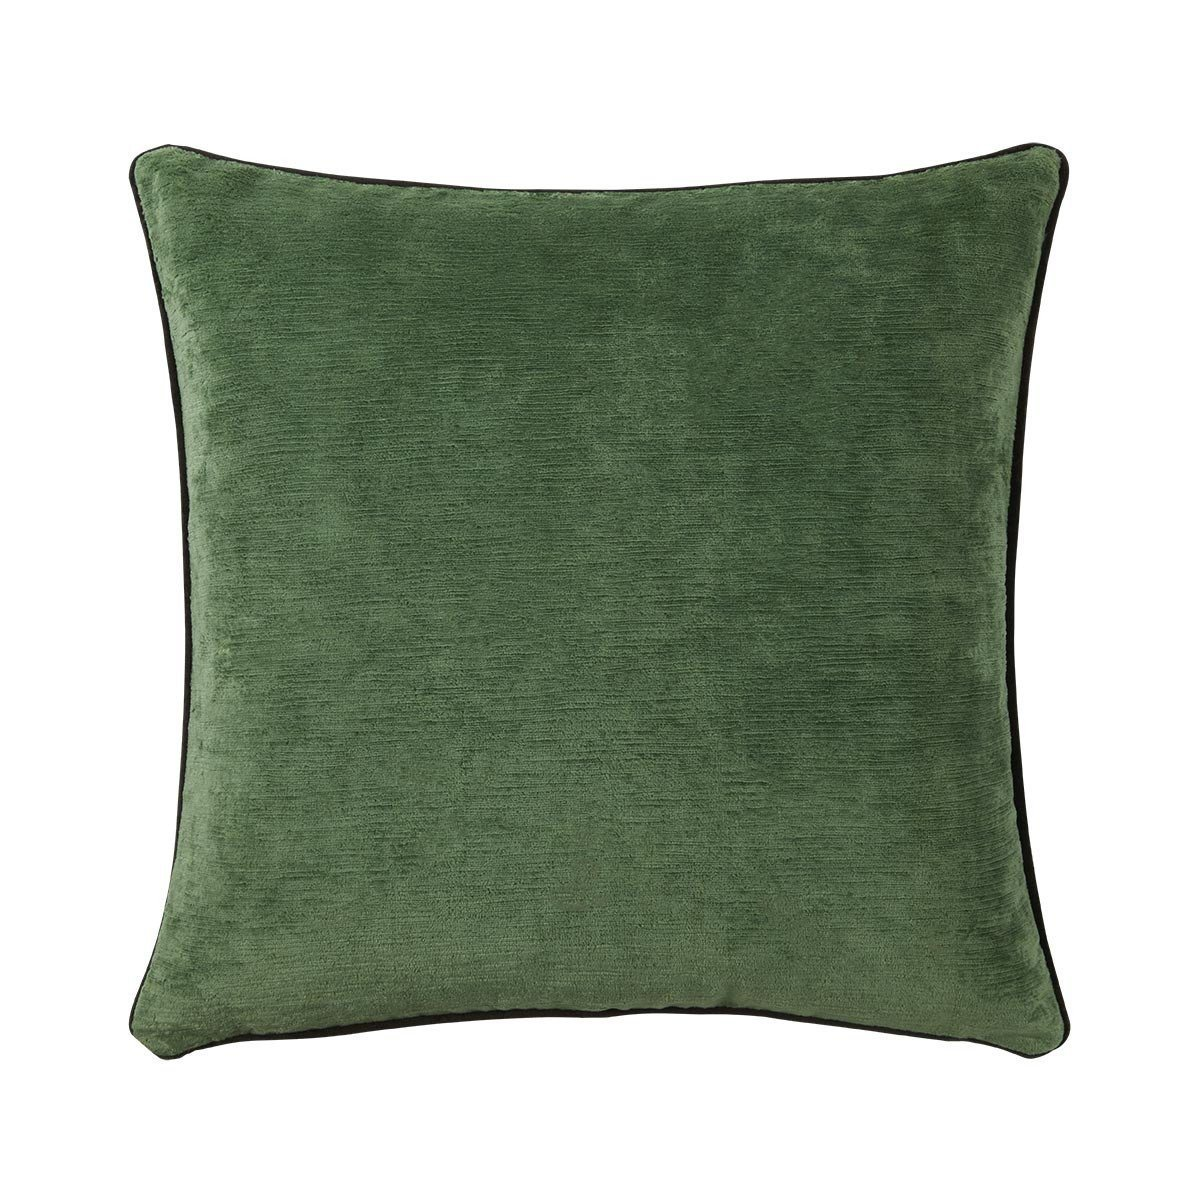 Boromee Menthe Decorative Pillow by Iosis | Fig Linens and Home